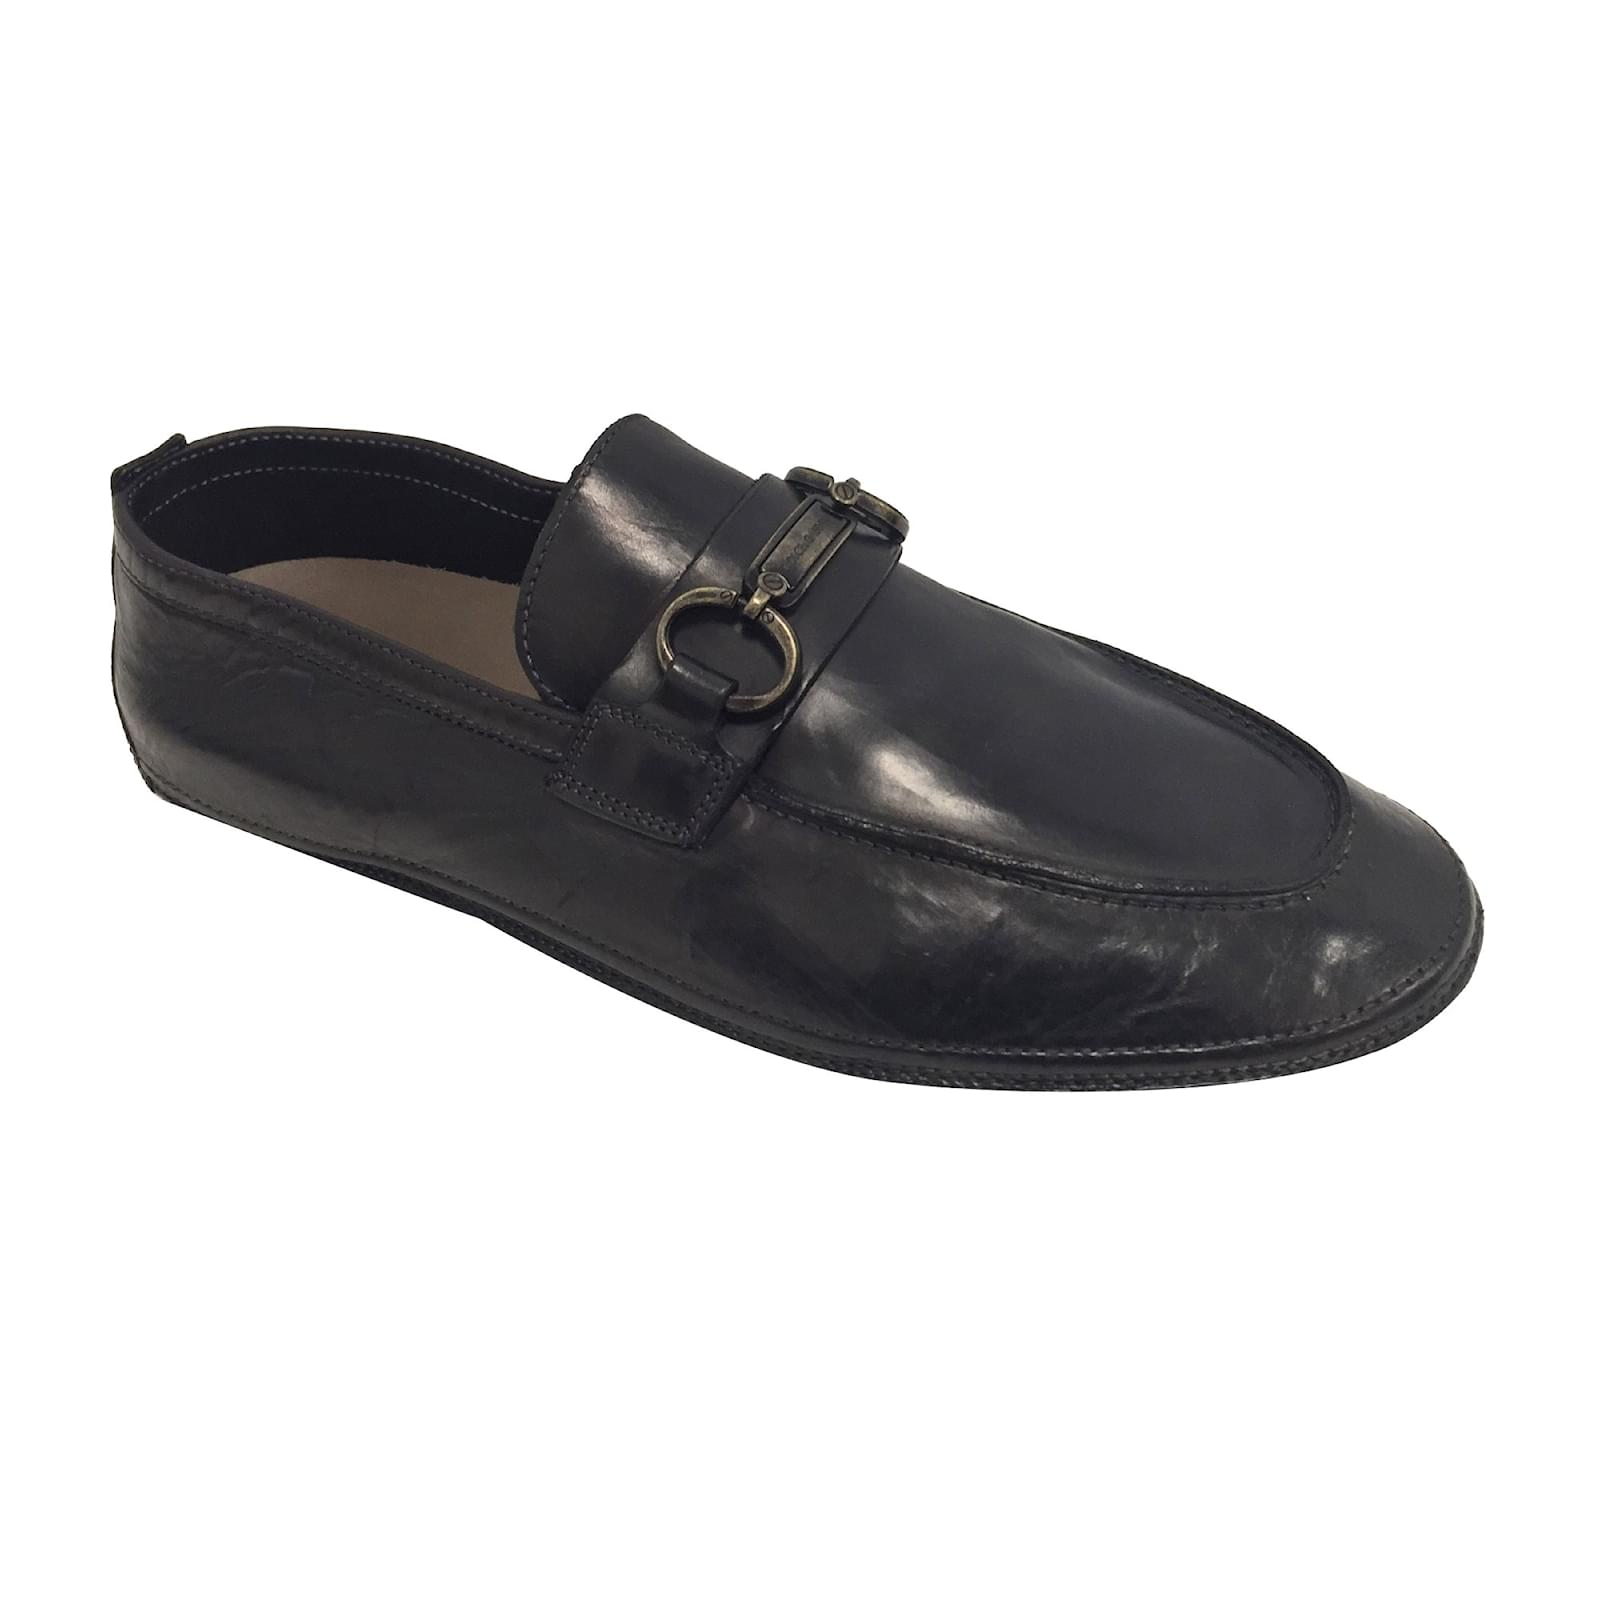 20368367423 Dolce   Gabbana Loafers Slip ons Loafers Slip ons Leather Black ref.61351